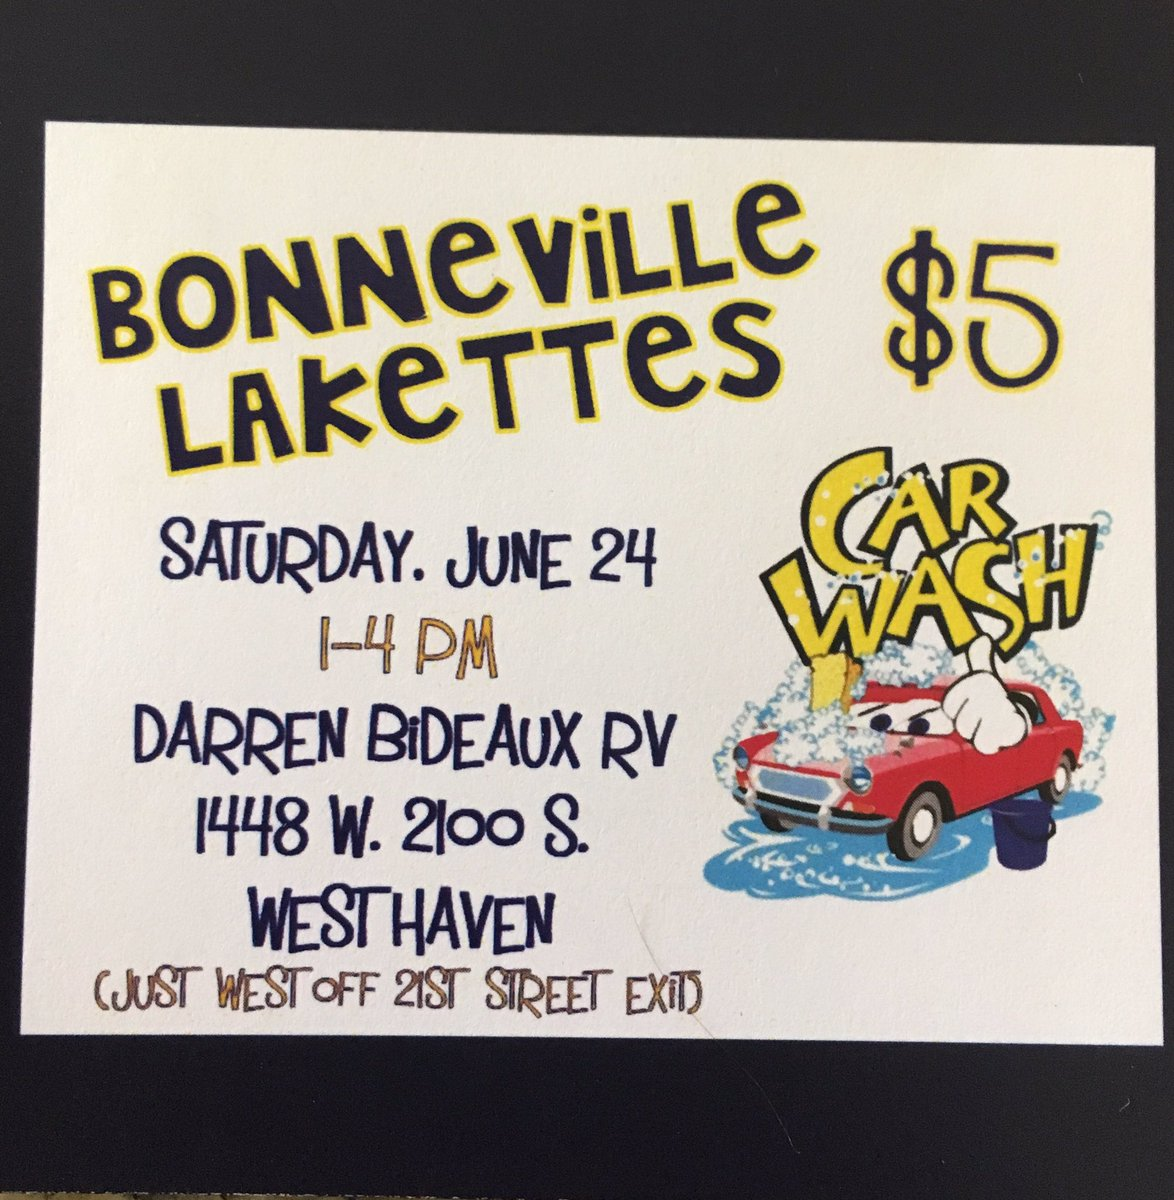 Come support your favorite drill team at Darren Bideaux RV this Saturday 1-4 pm! We&#39;d love to see you there!  #L4L <br>http://pic.twitter.com/SzpAvdgQwa